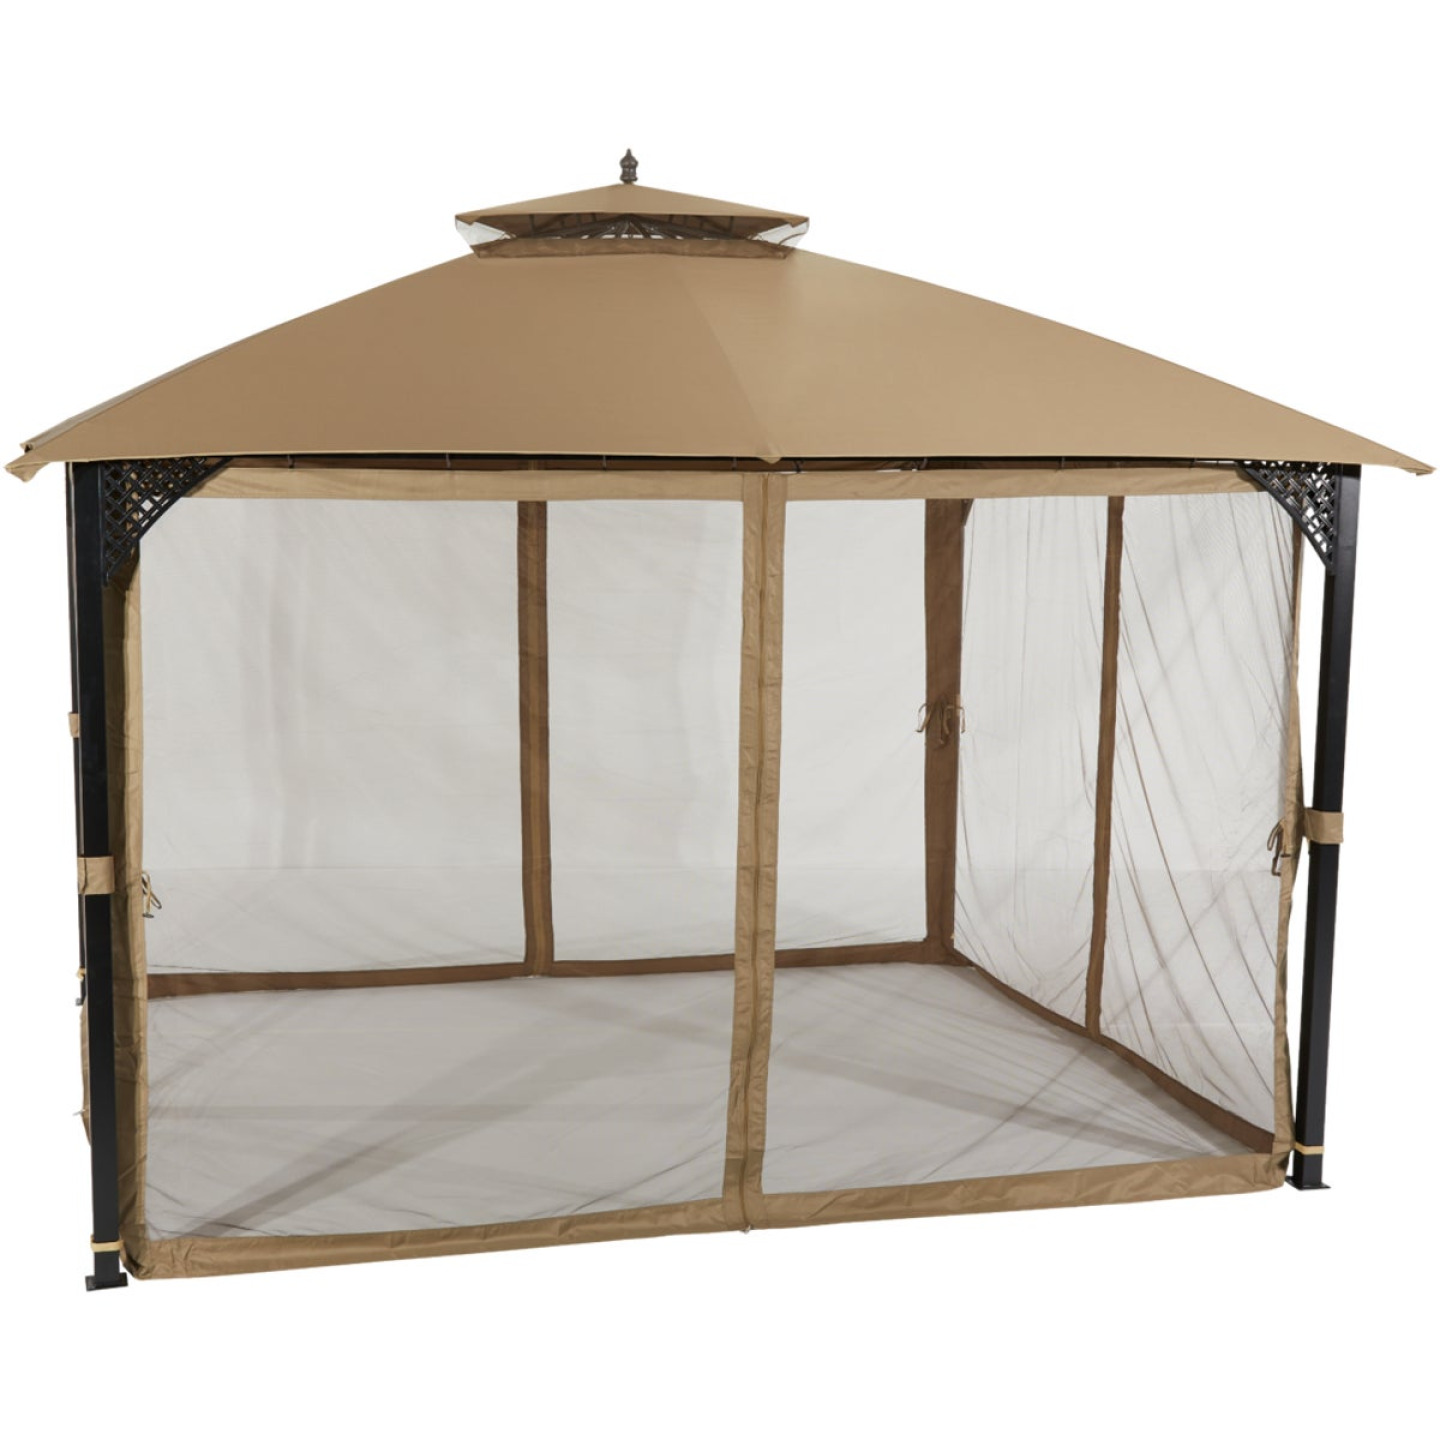 Outdoor Expressions 10 Ft. x 12 Ft. Art Steel Gazebo Image 1